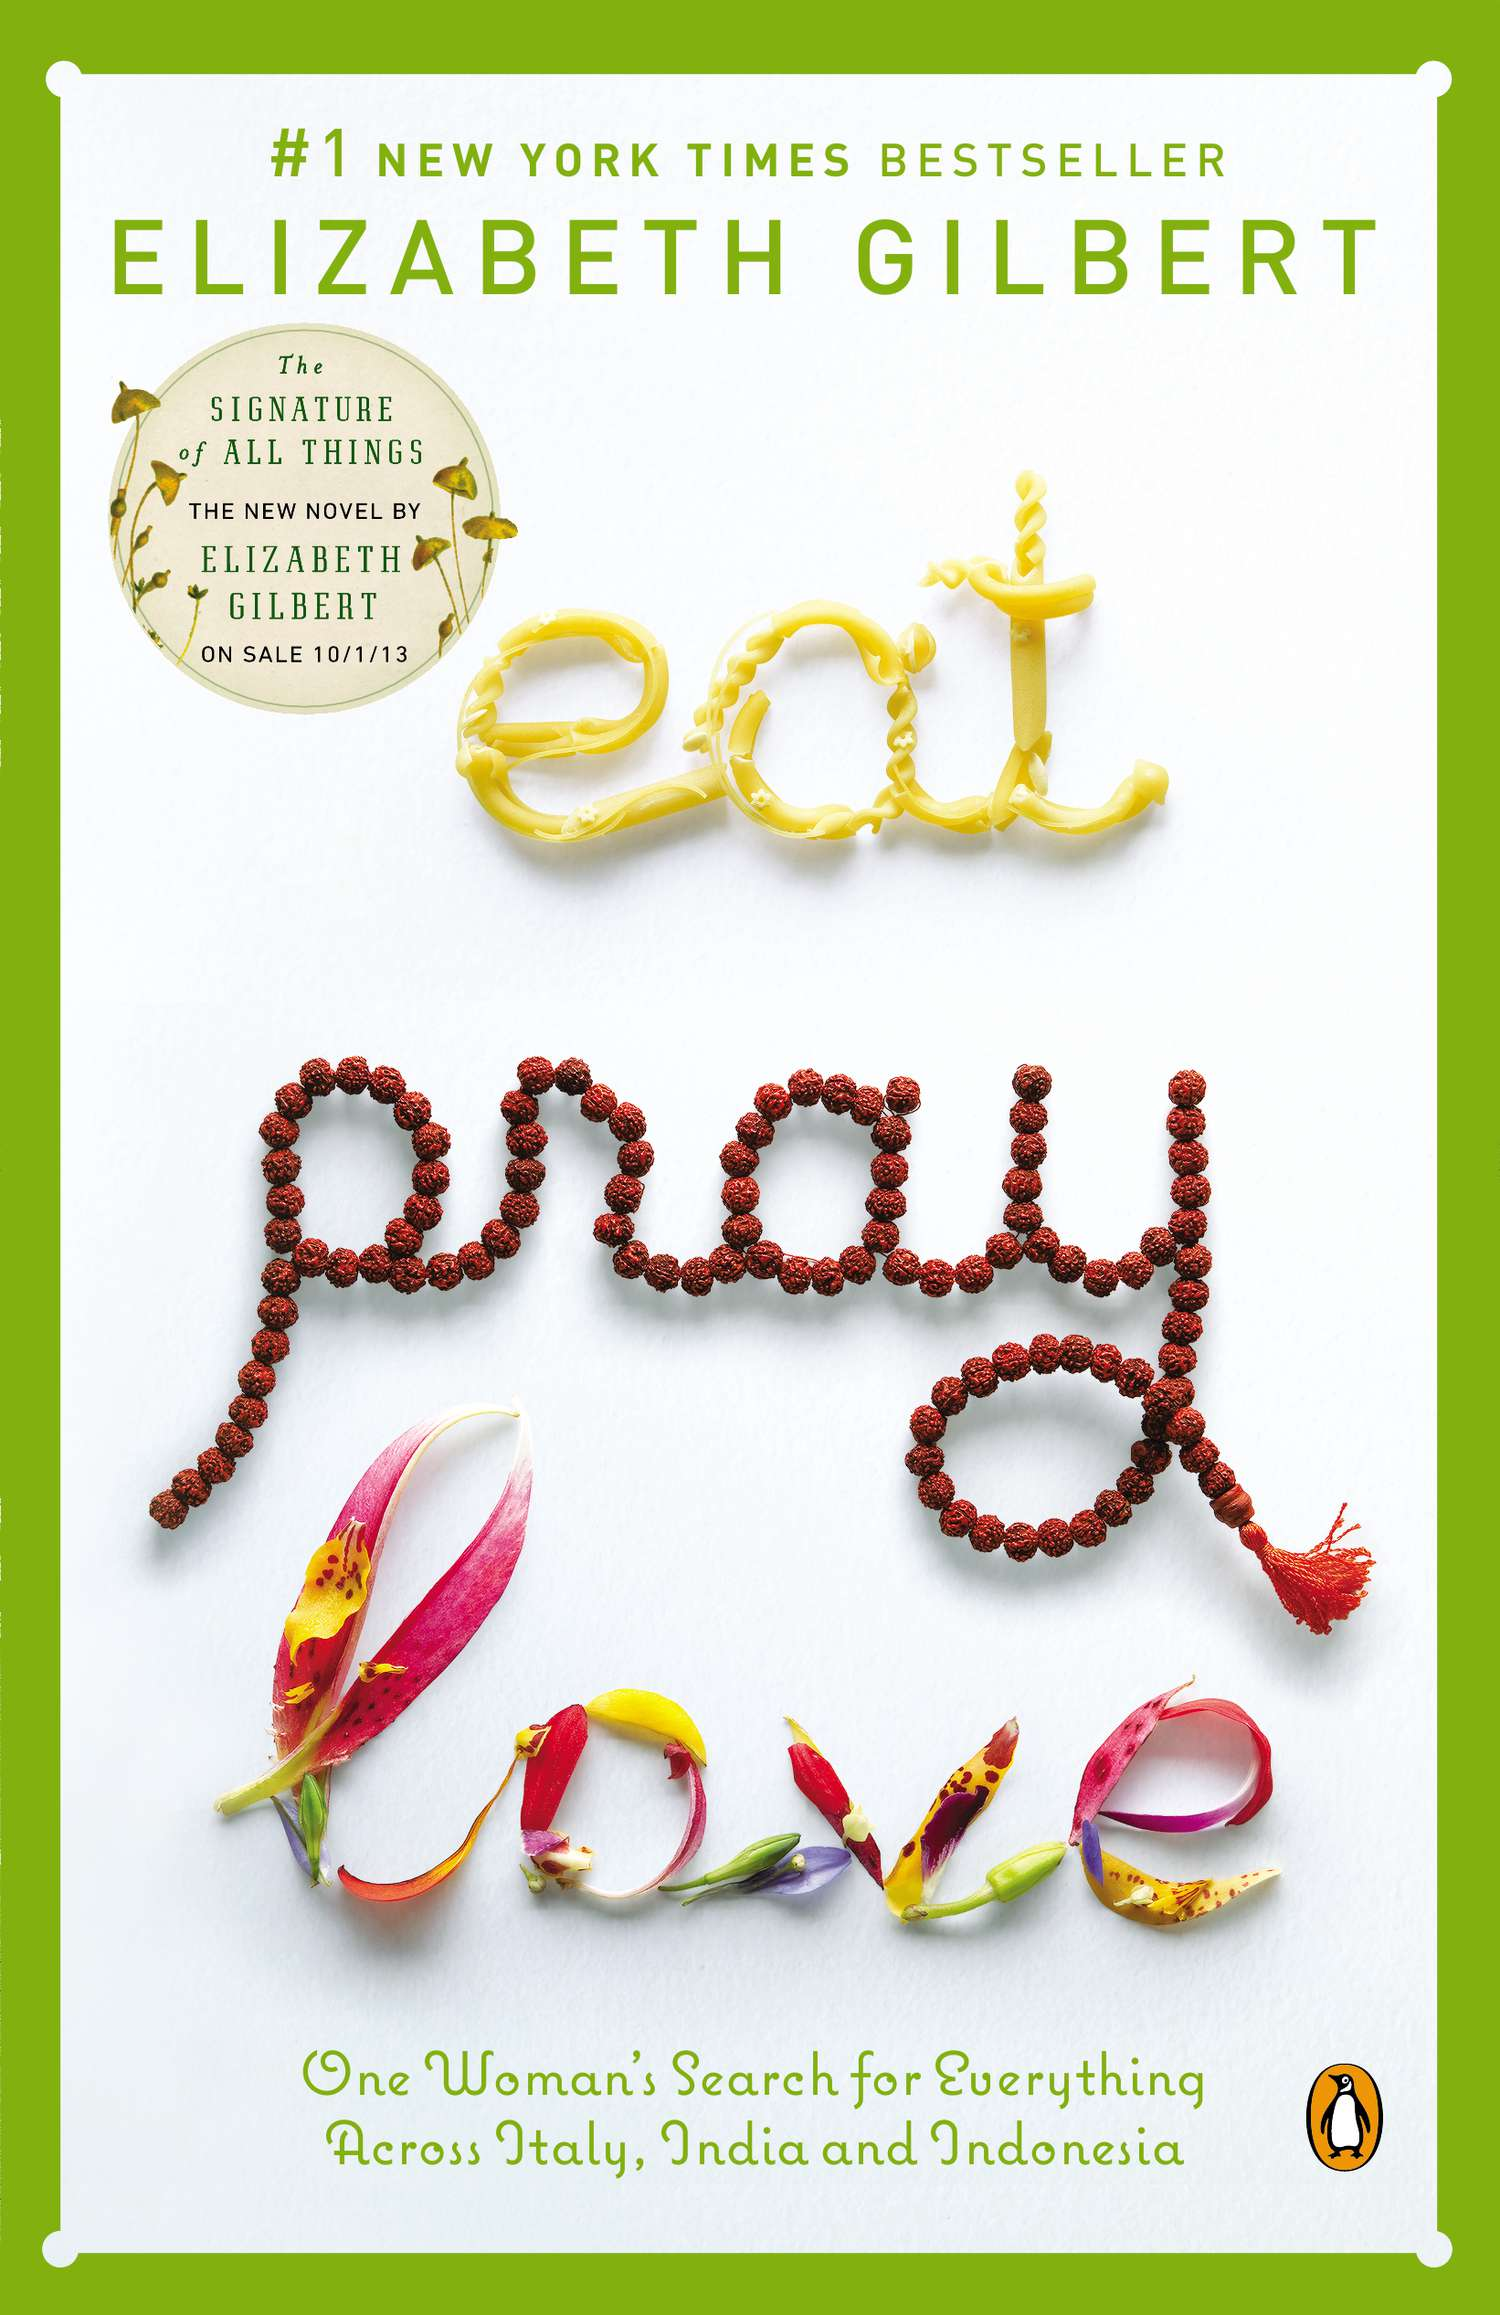 Eat, Pray, Love, Divorce And Judge: Let's Lay Off Elizabeth Gilbert